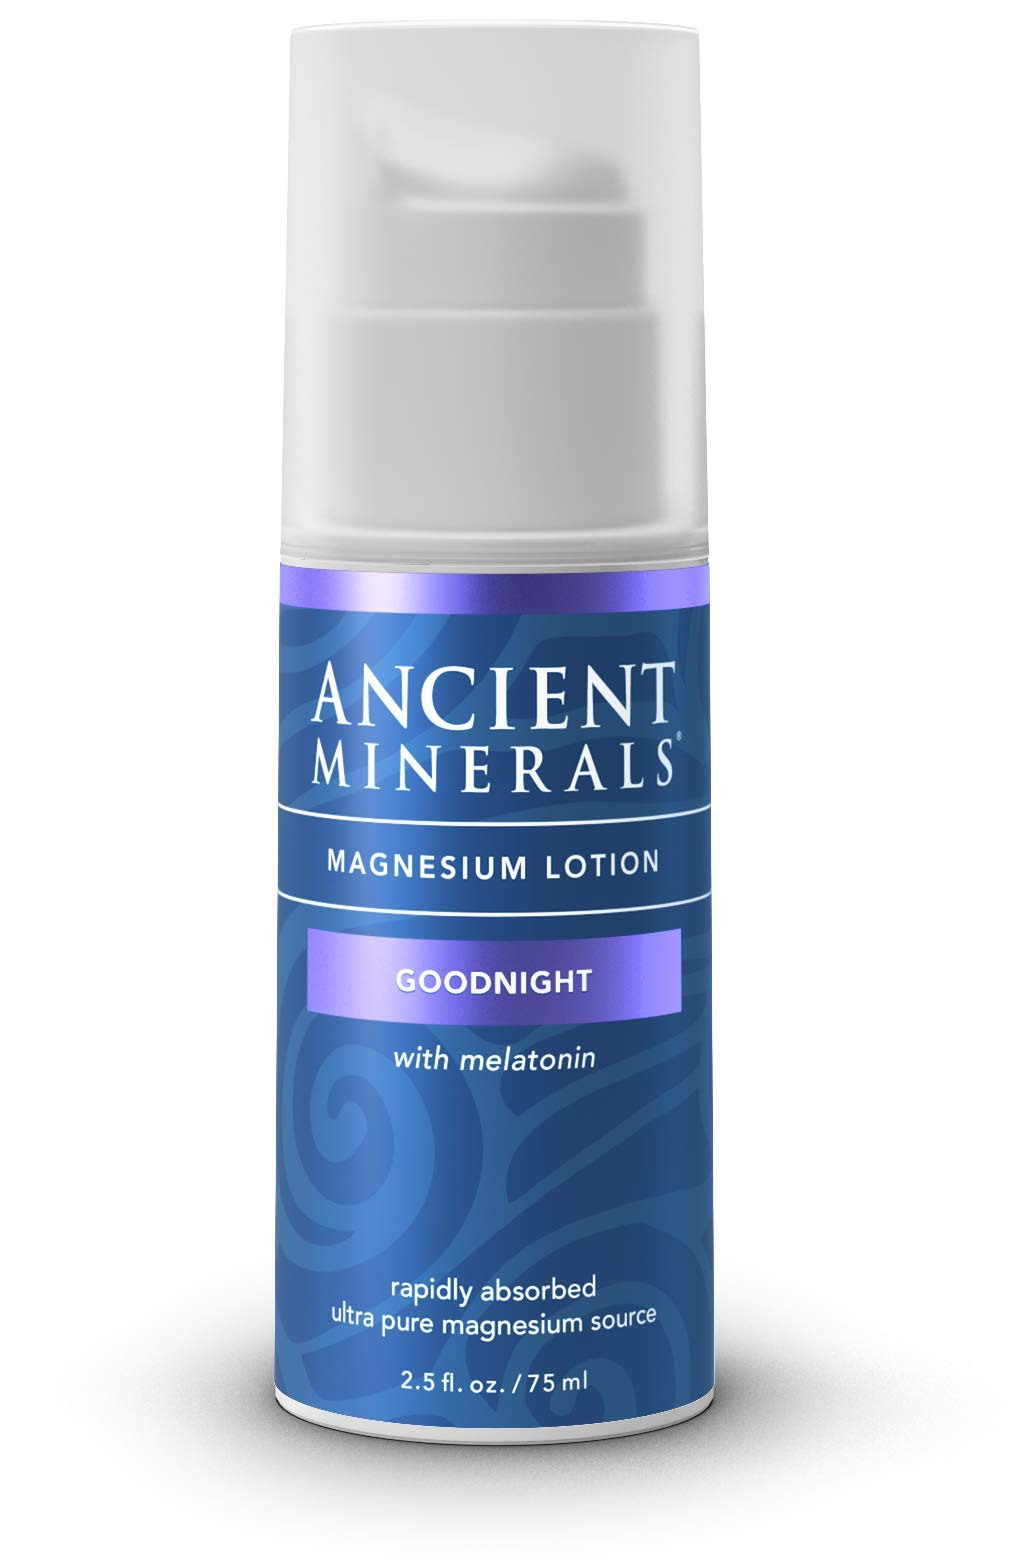 Ancient Minerals Goodnight Magnesium Lotion with Melatonin and OptiMSM - Night Cream of Topical Nighttime Moisturizing Lotion formulated for Bedtime Absorption (2.5oz) by Ancient Minerals